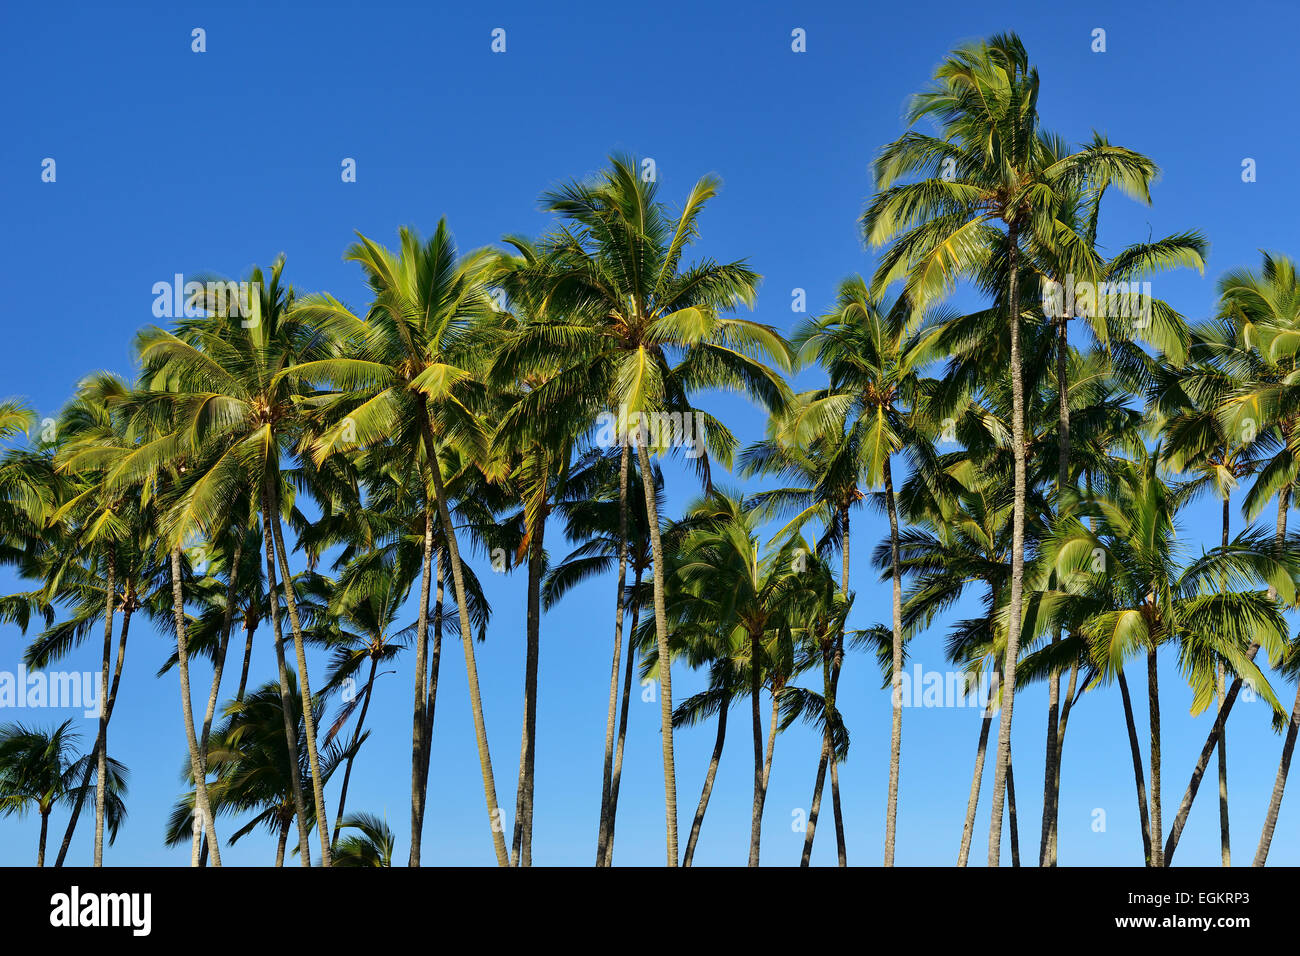 Palm trees against a blue sky in Hilo, Big Island, USA - Stock Image